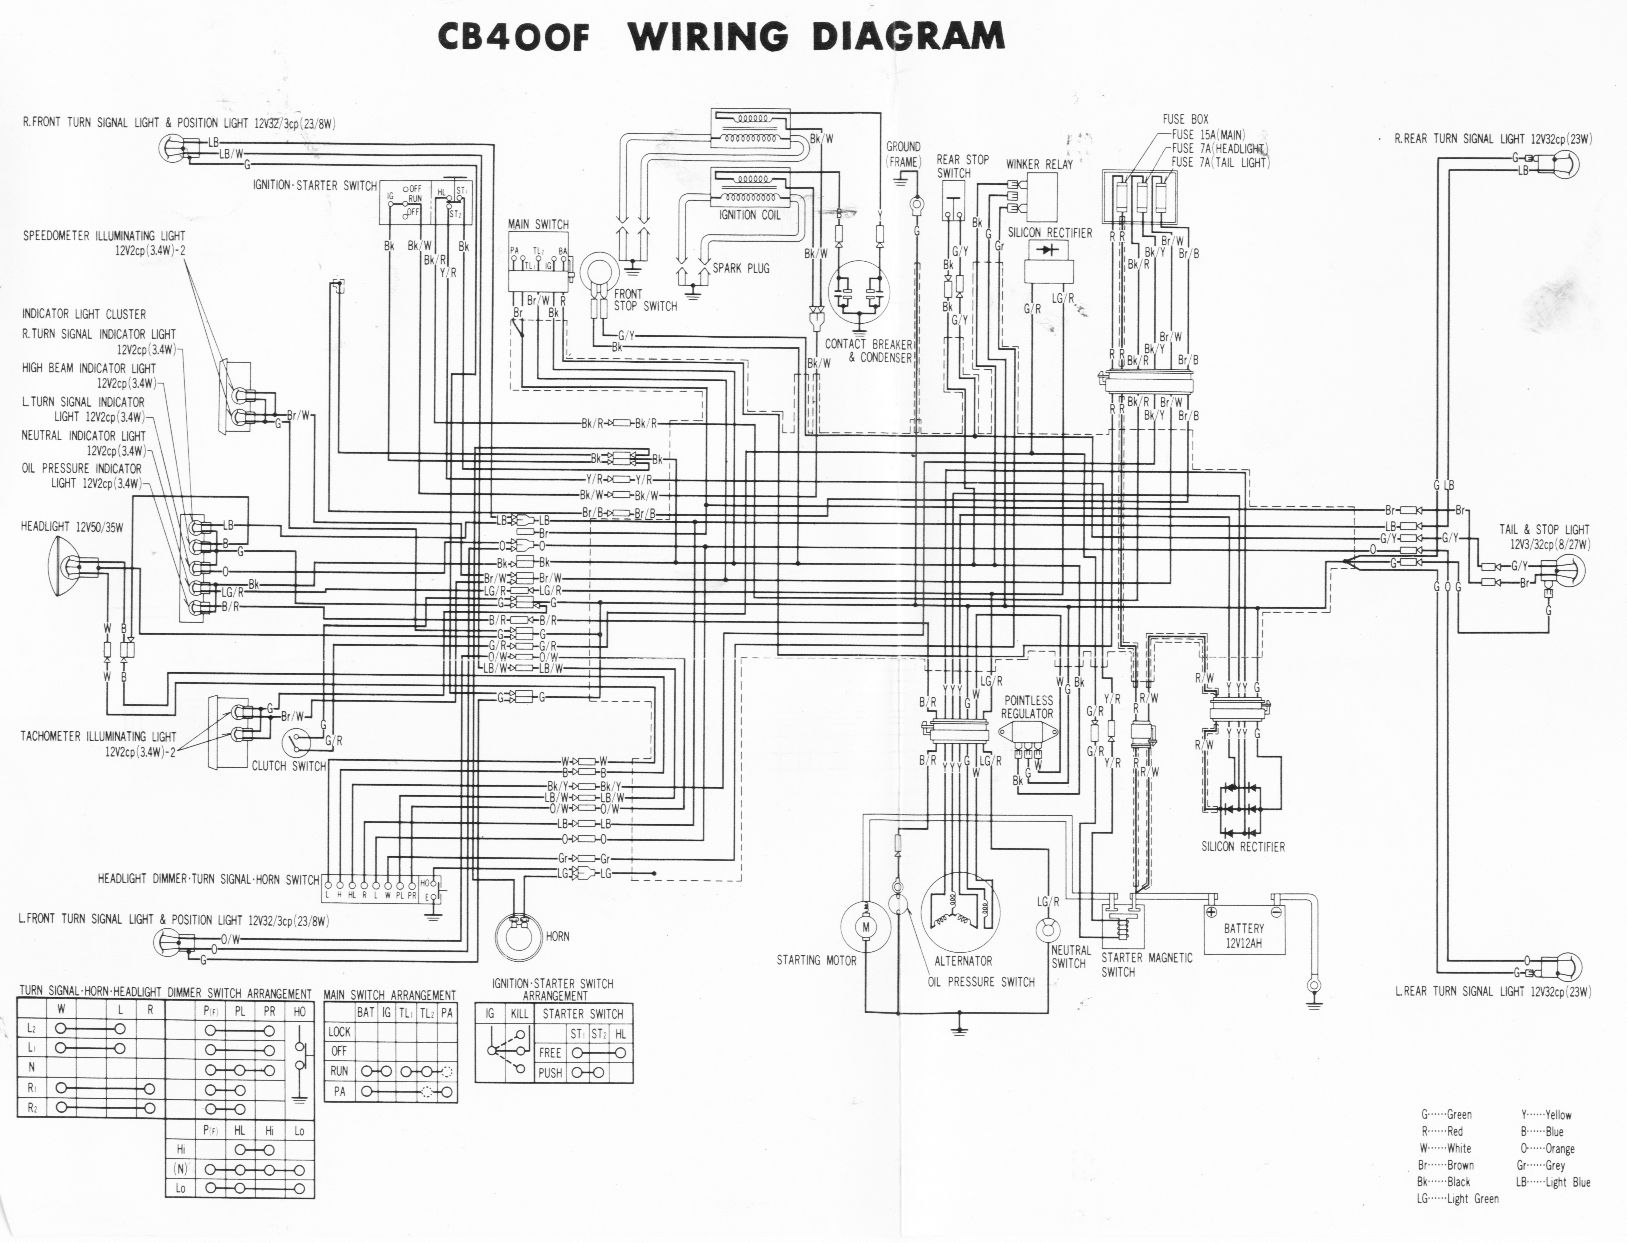 cb400f wiring diagram all wiring diagram cb400f wiring diagram